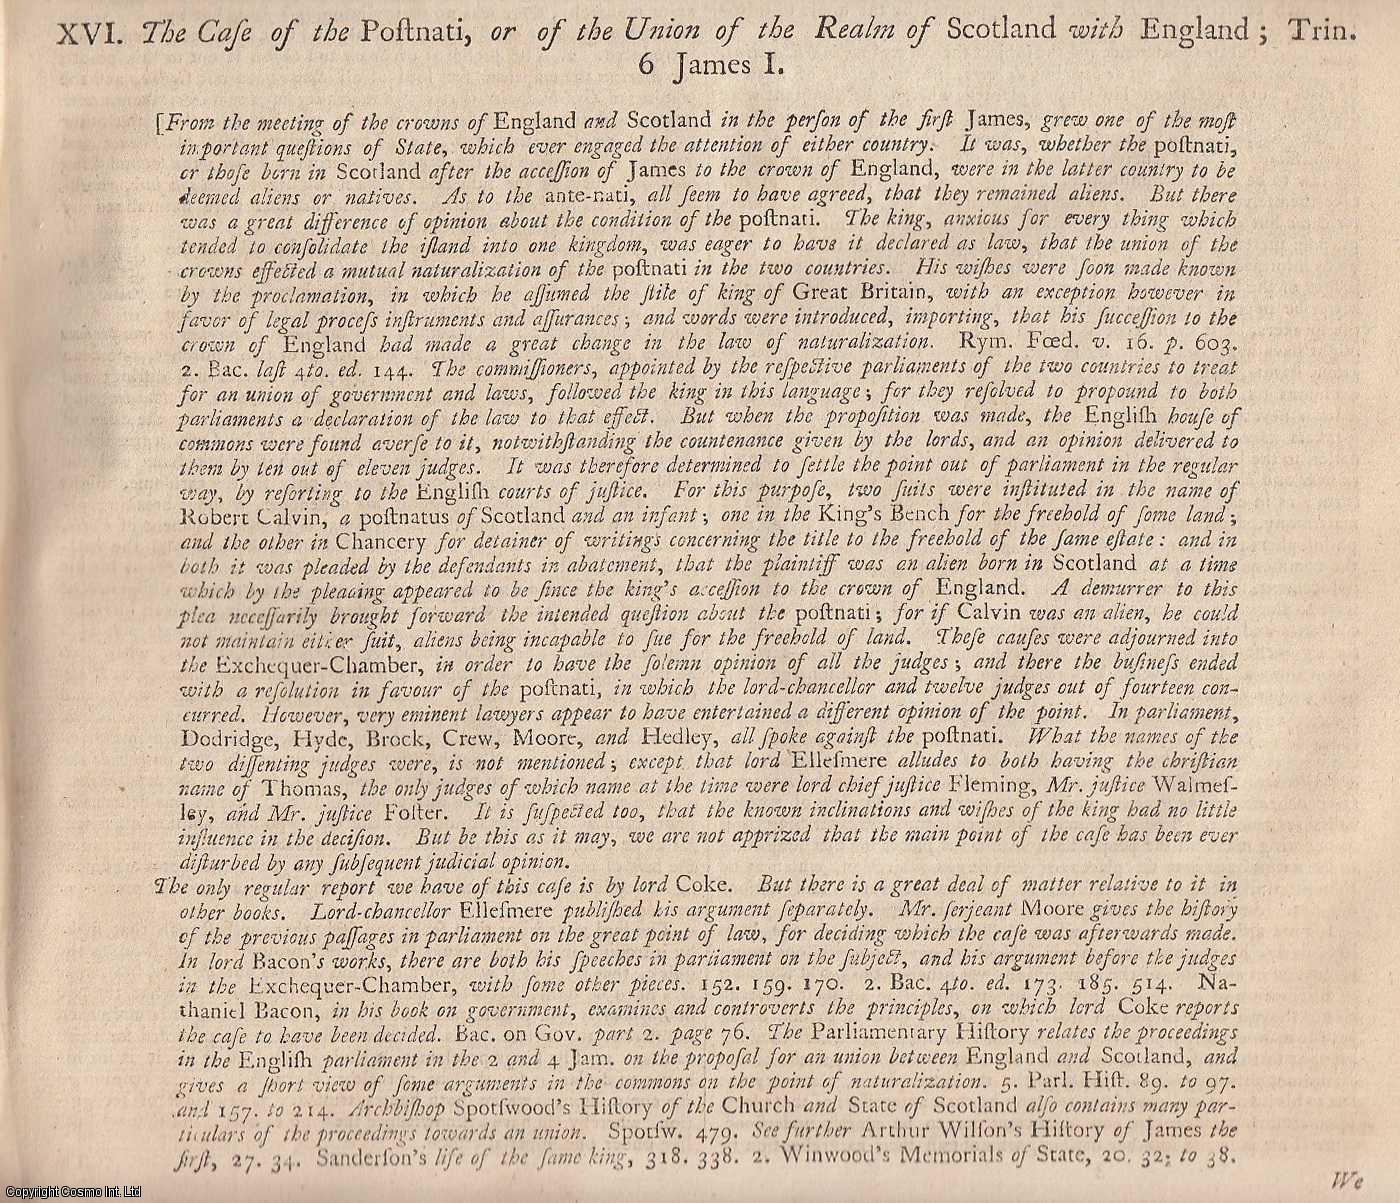 [TRIAL]. - CALVIN'S CASE, JUS SOLI.The Case of the Postnati, or of the Union of the Realm of Scotland with England. 1608. An original article from the Collected State Trials::Large Folio, 1779.